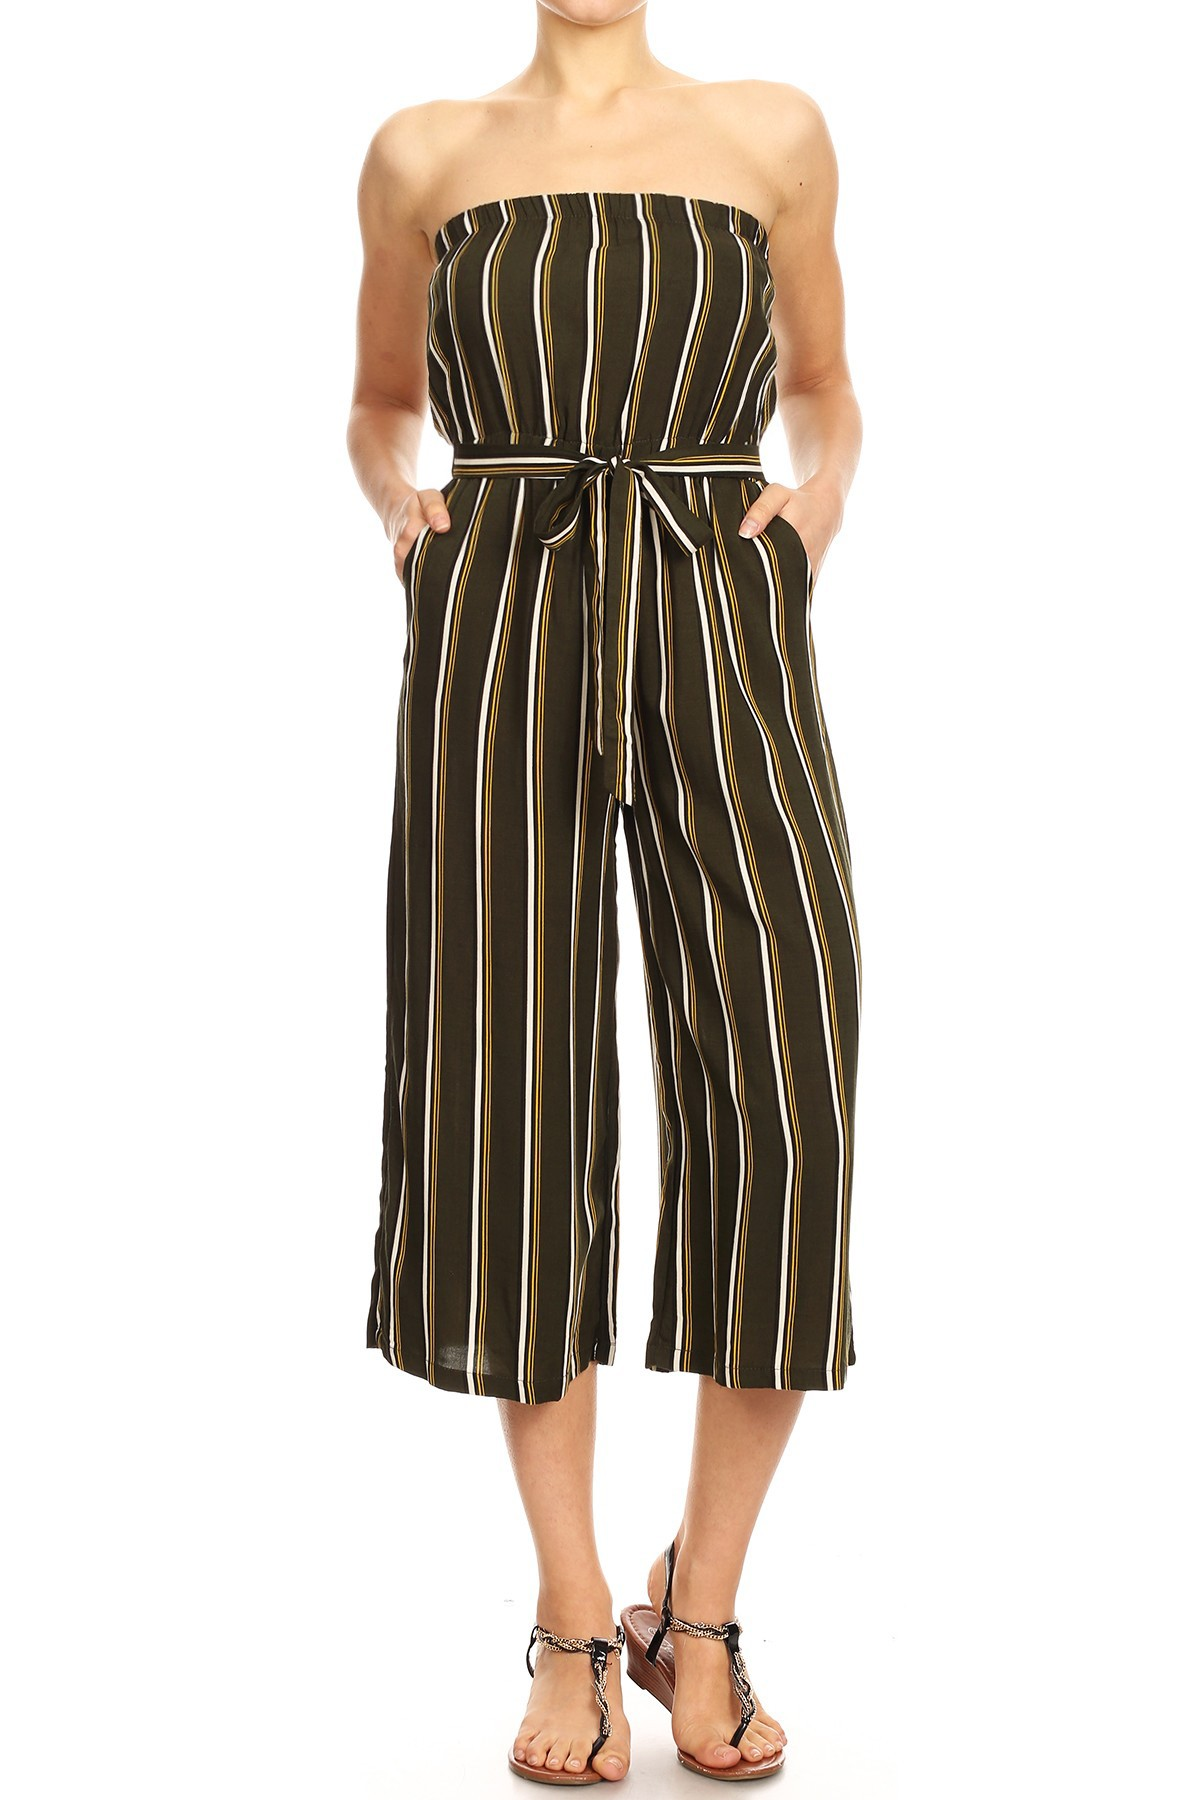 OLIVE/MUSTARD/CREAM STRIPE PRINT RAYON TUBE TOP CROPPED JUMPSUIT#9JPS04-03